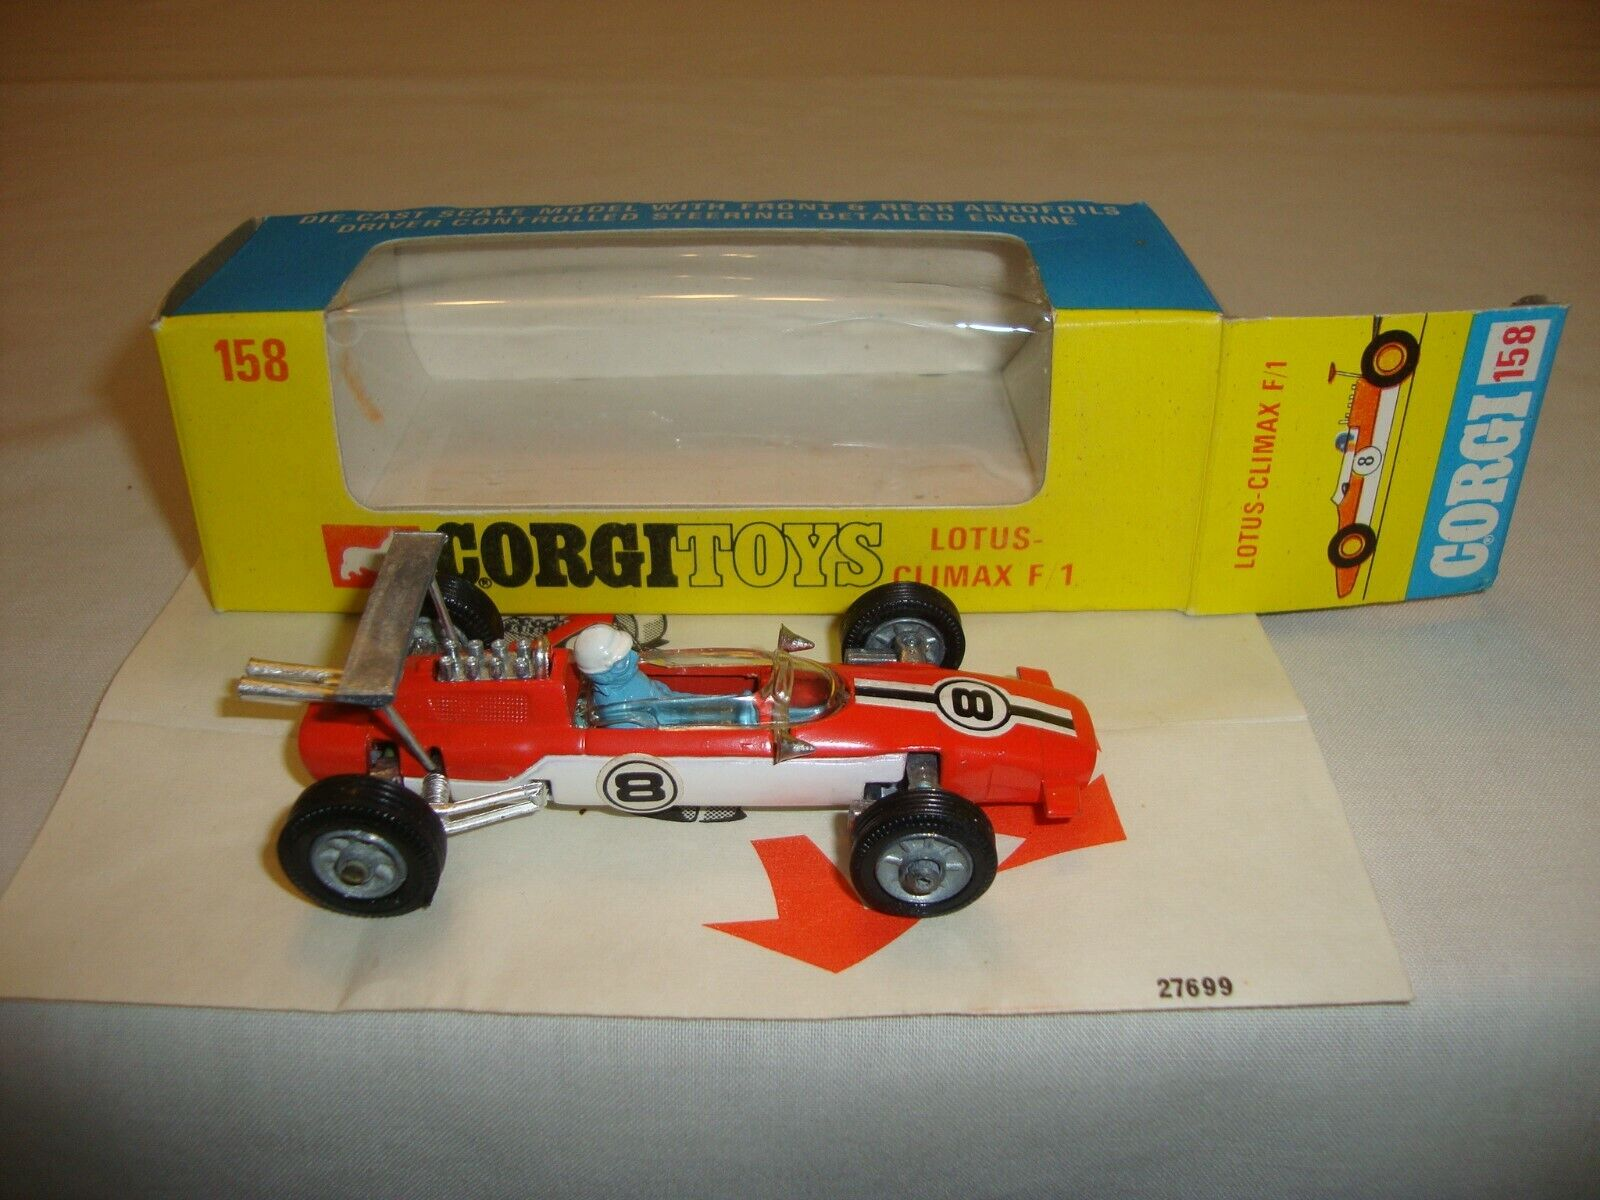 CORGI 158 LOTUS CLIMAX F1 racing voiture-nr Comme neuf  in original box  gros pas cher